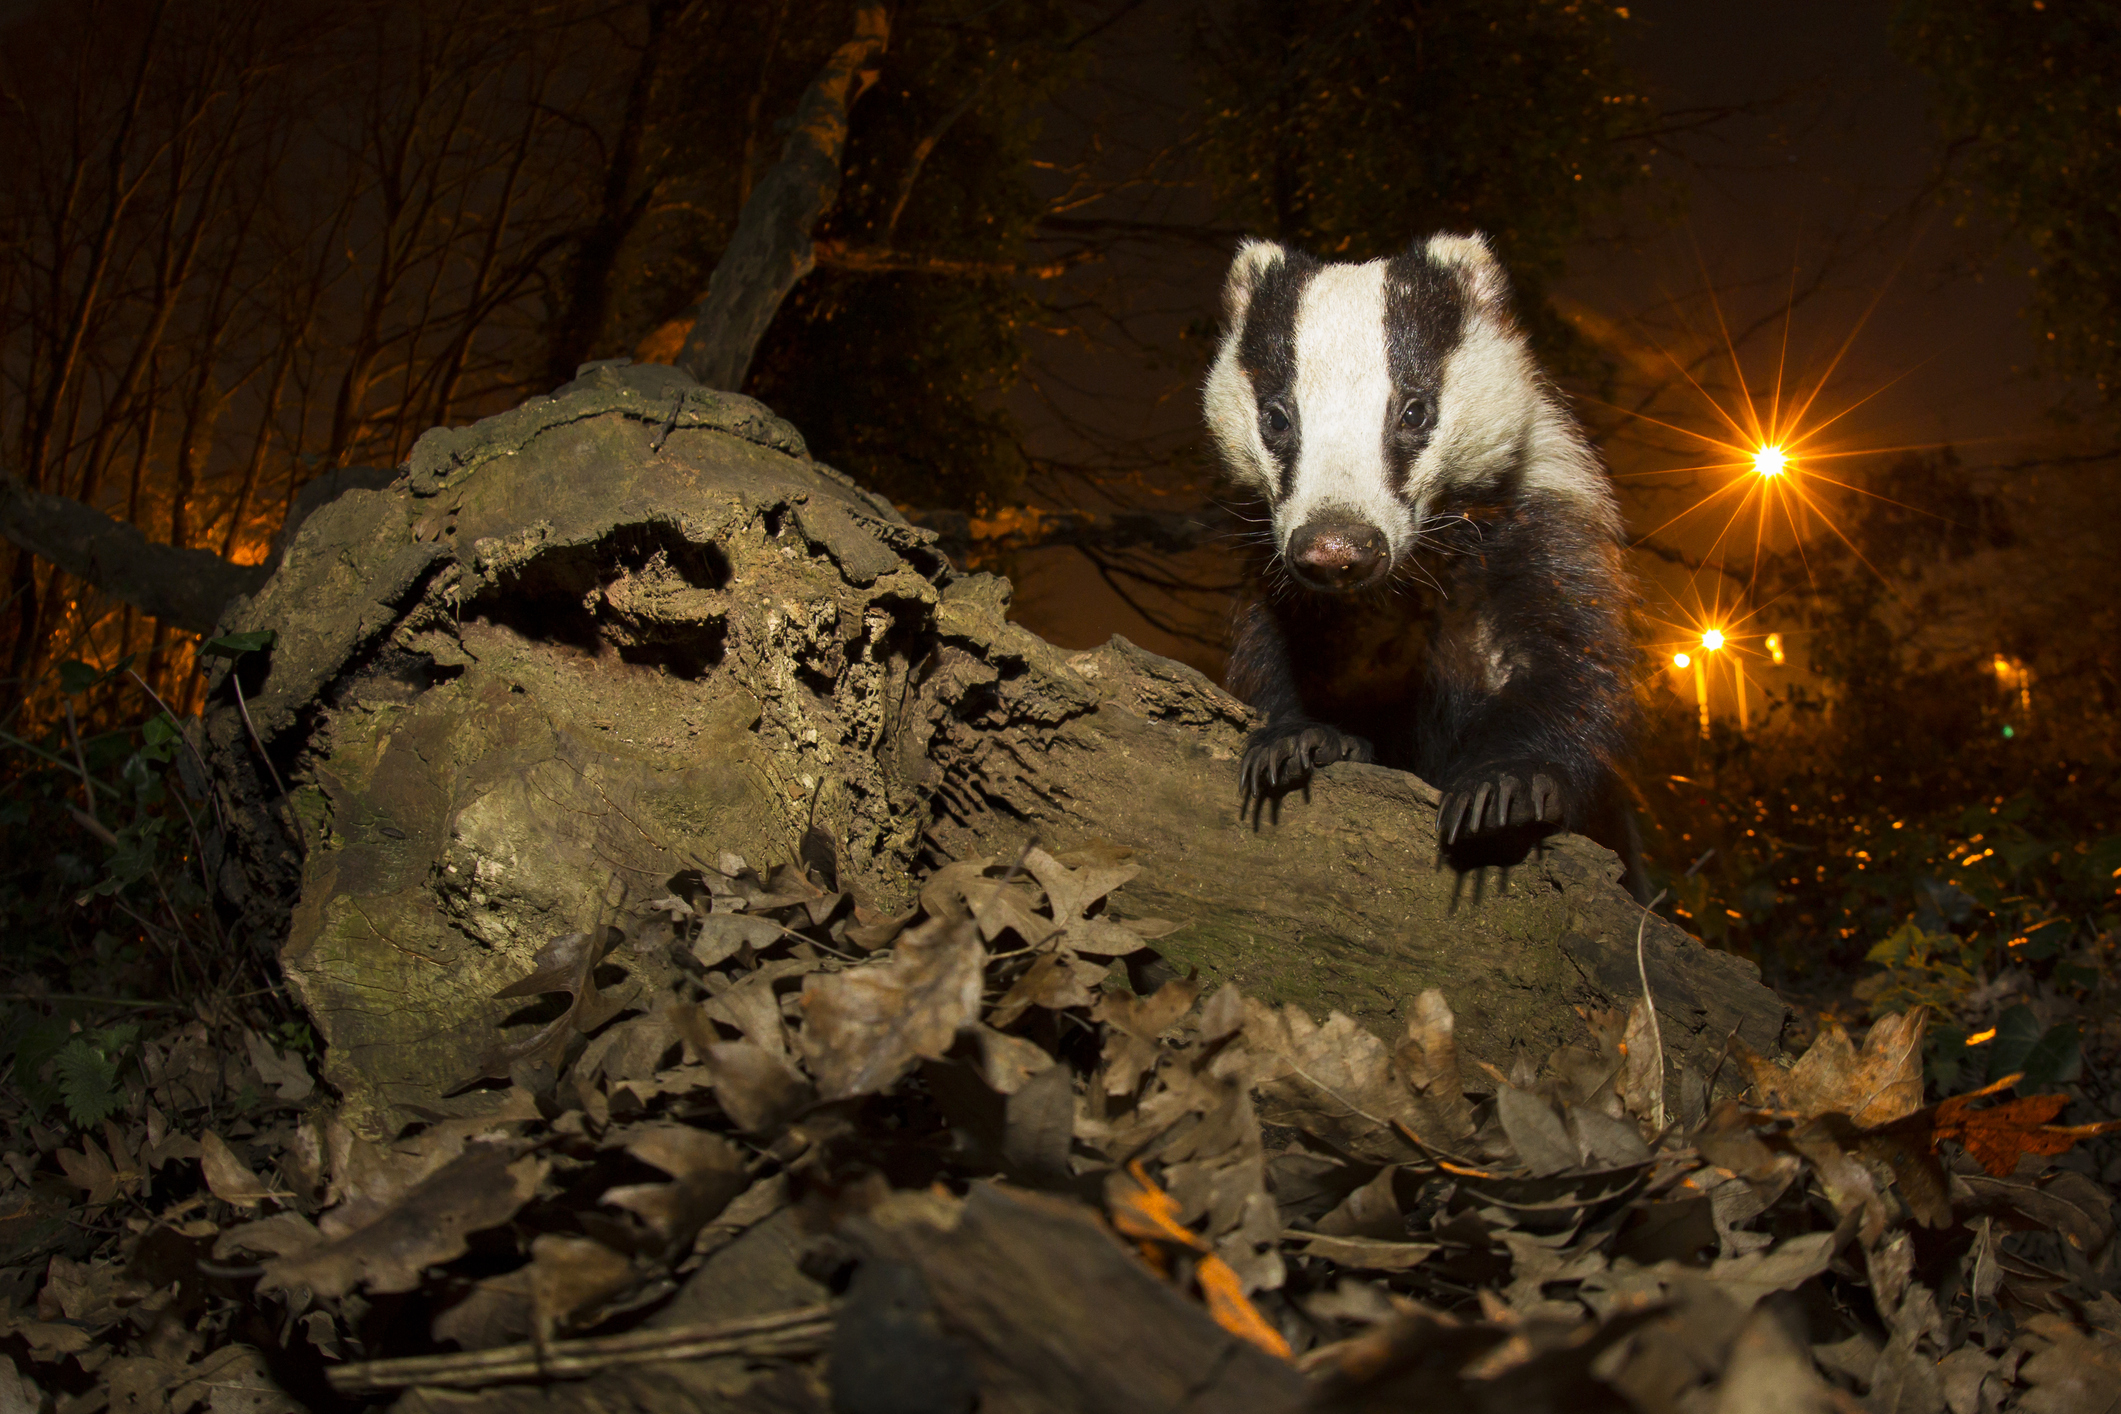 Amazing photos of nocturnal animals | Live Science